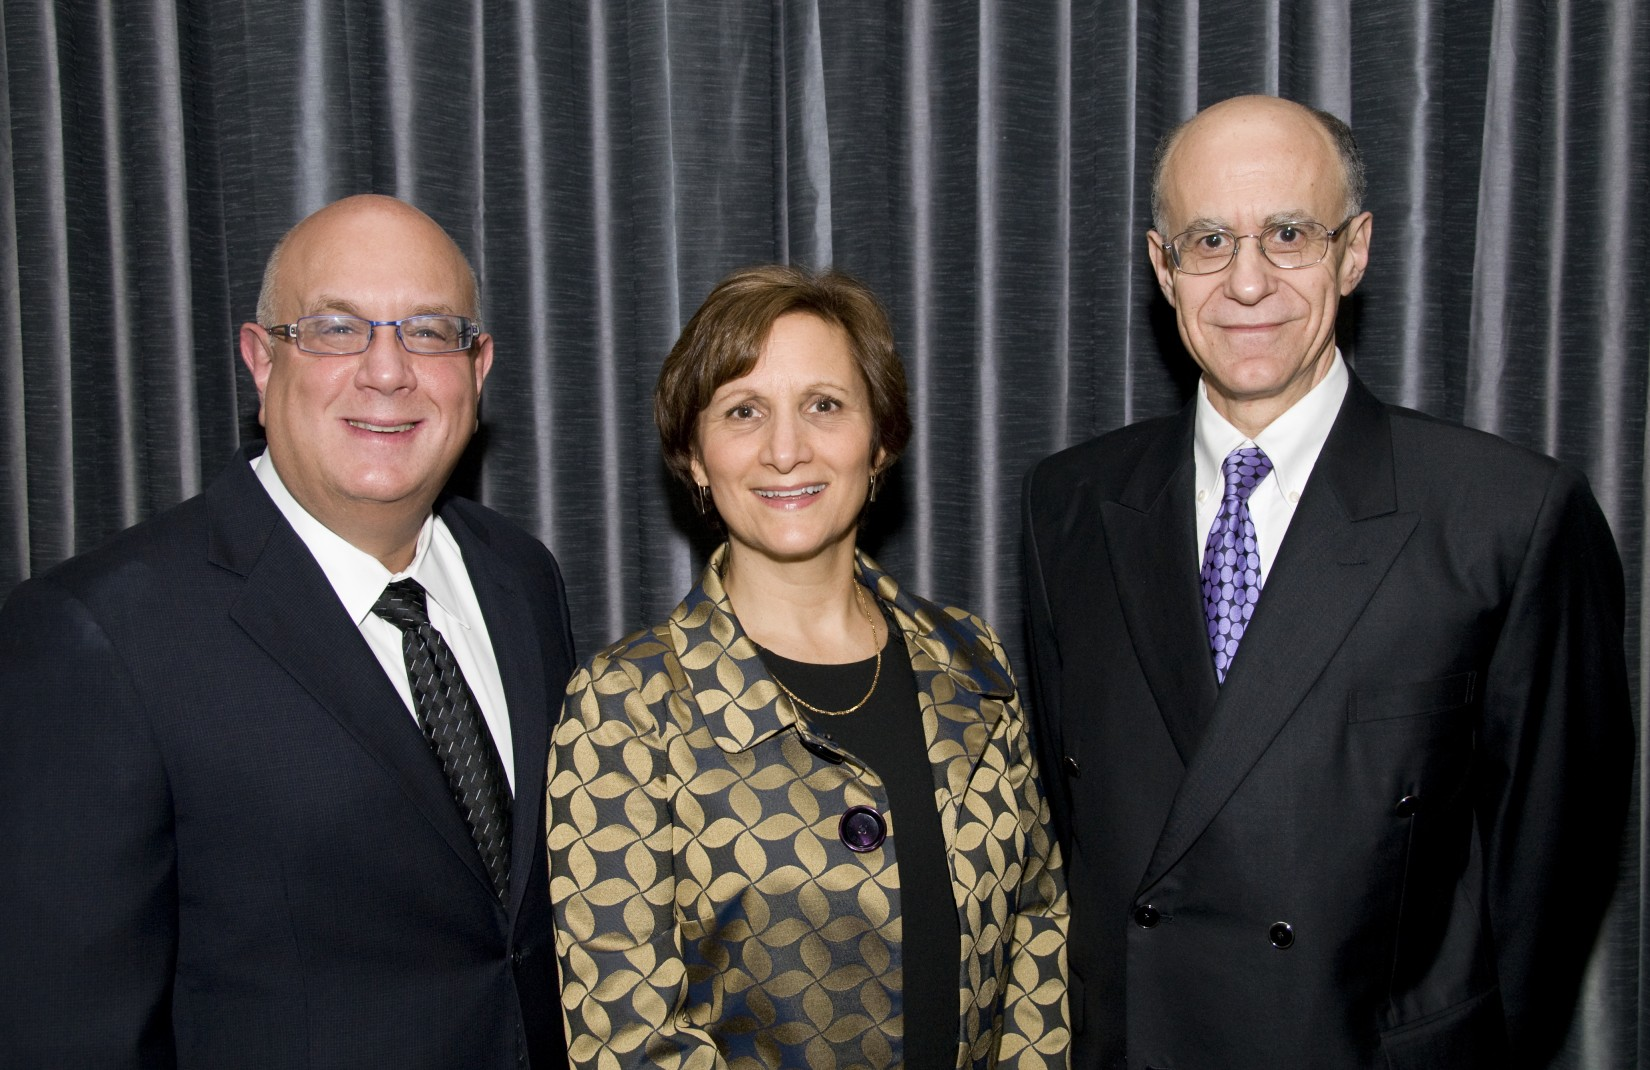 The Hon. Michael H. Simon, U.S. Rep. Suzanne Bonamici, and Dean Robert Klonoff.